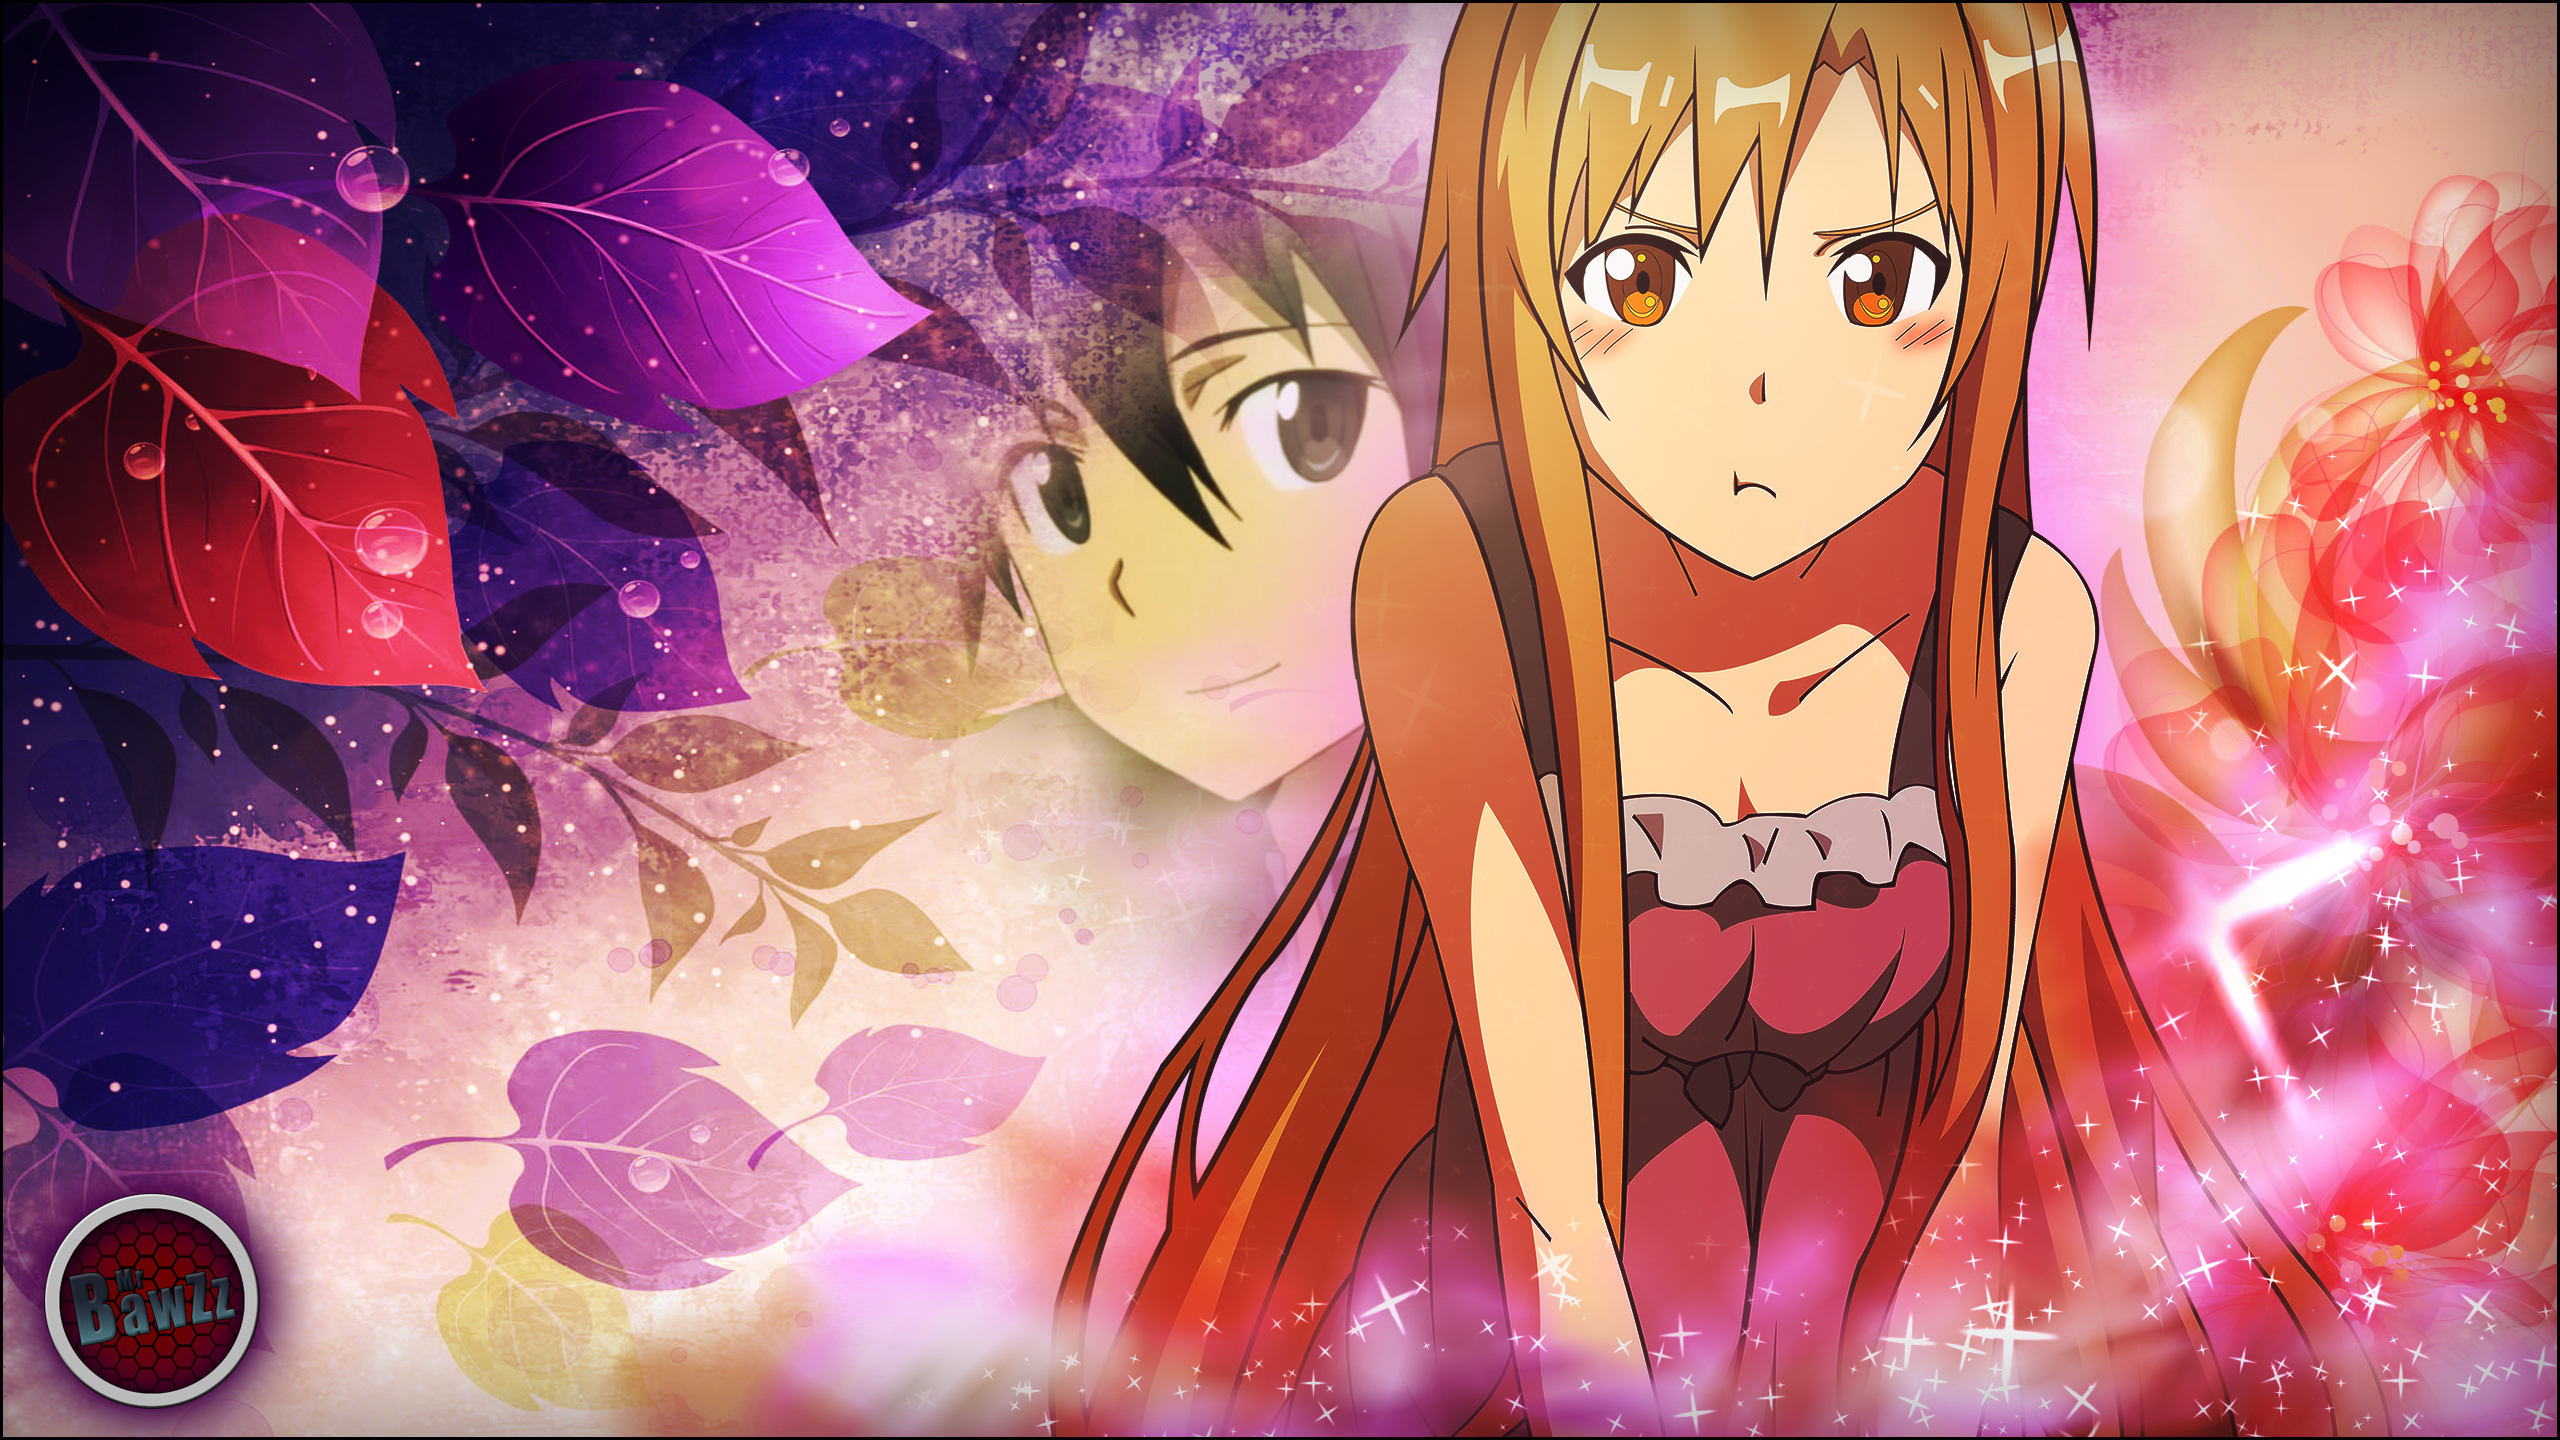 Sword Art Online Asuna Wallpaper by MrBawZz on DeviantArt